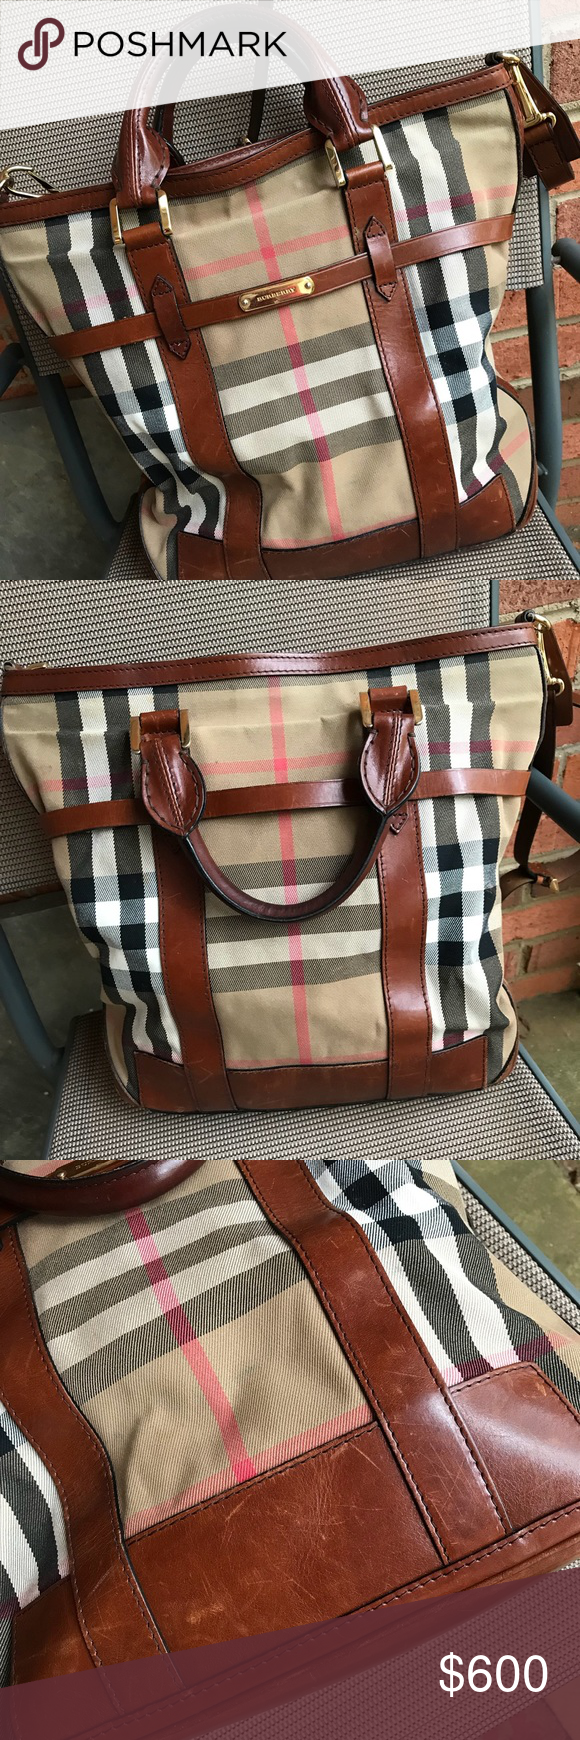 Burberry Bag Used Can With Just The Handles Or Removable Shoulder Strap Some Scuffs As Seen In Pictures Measures Roximately